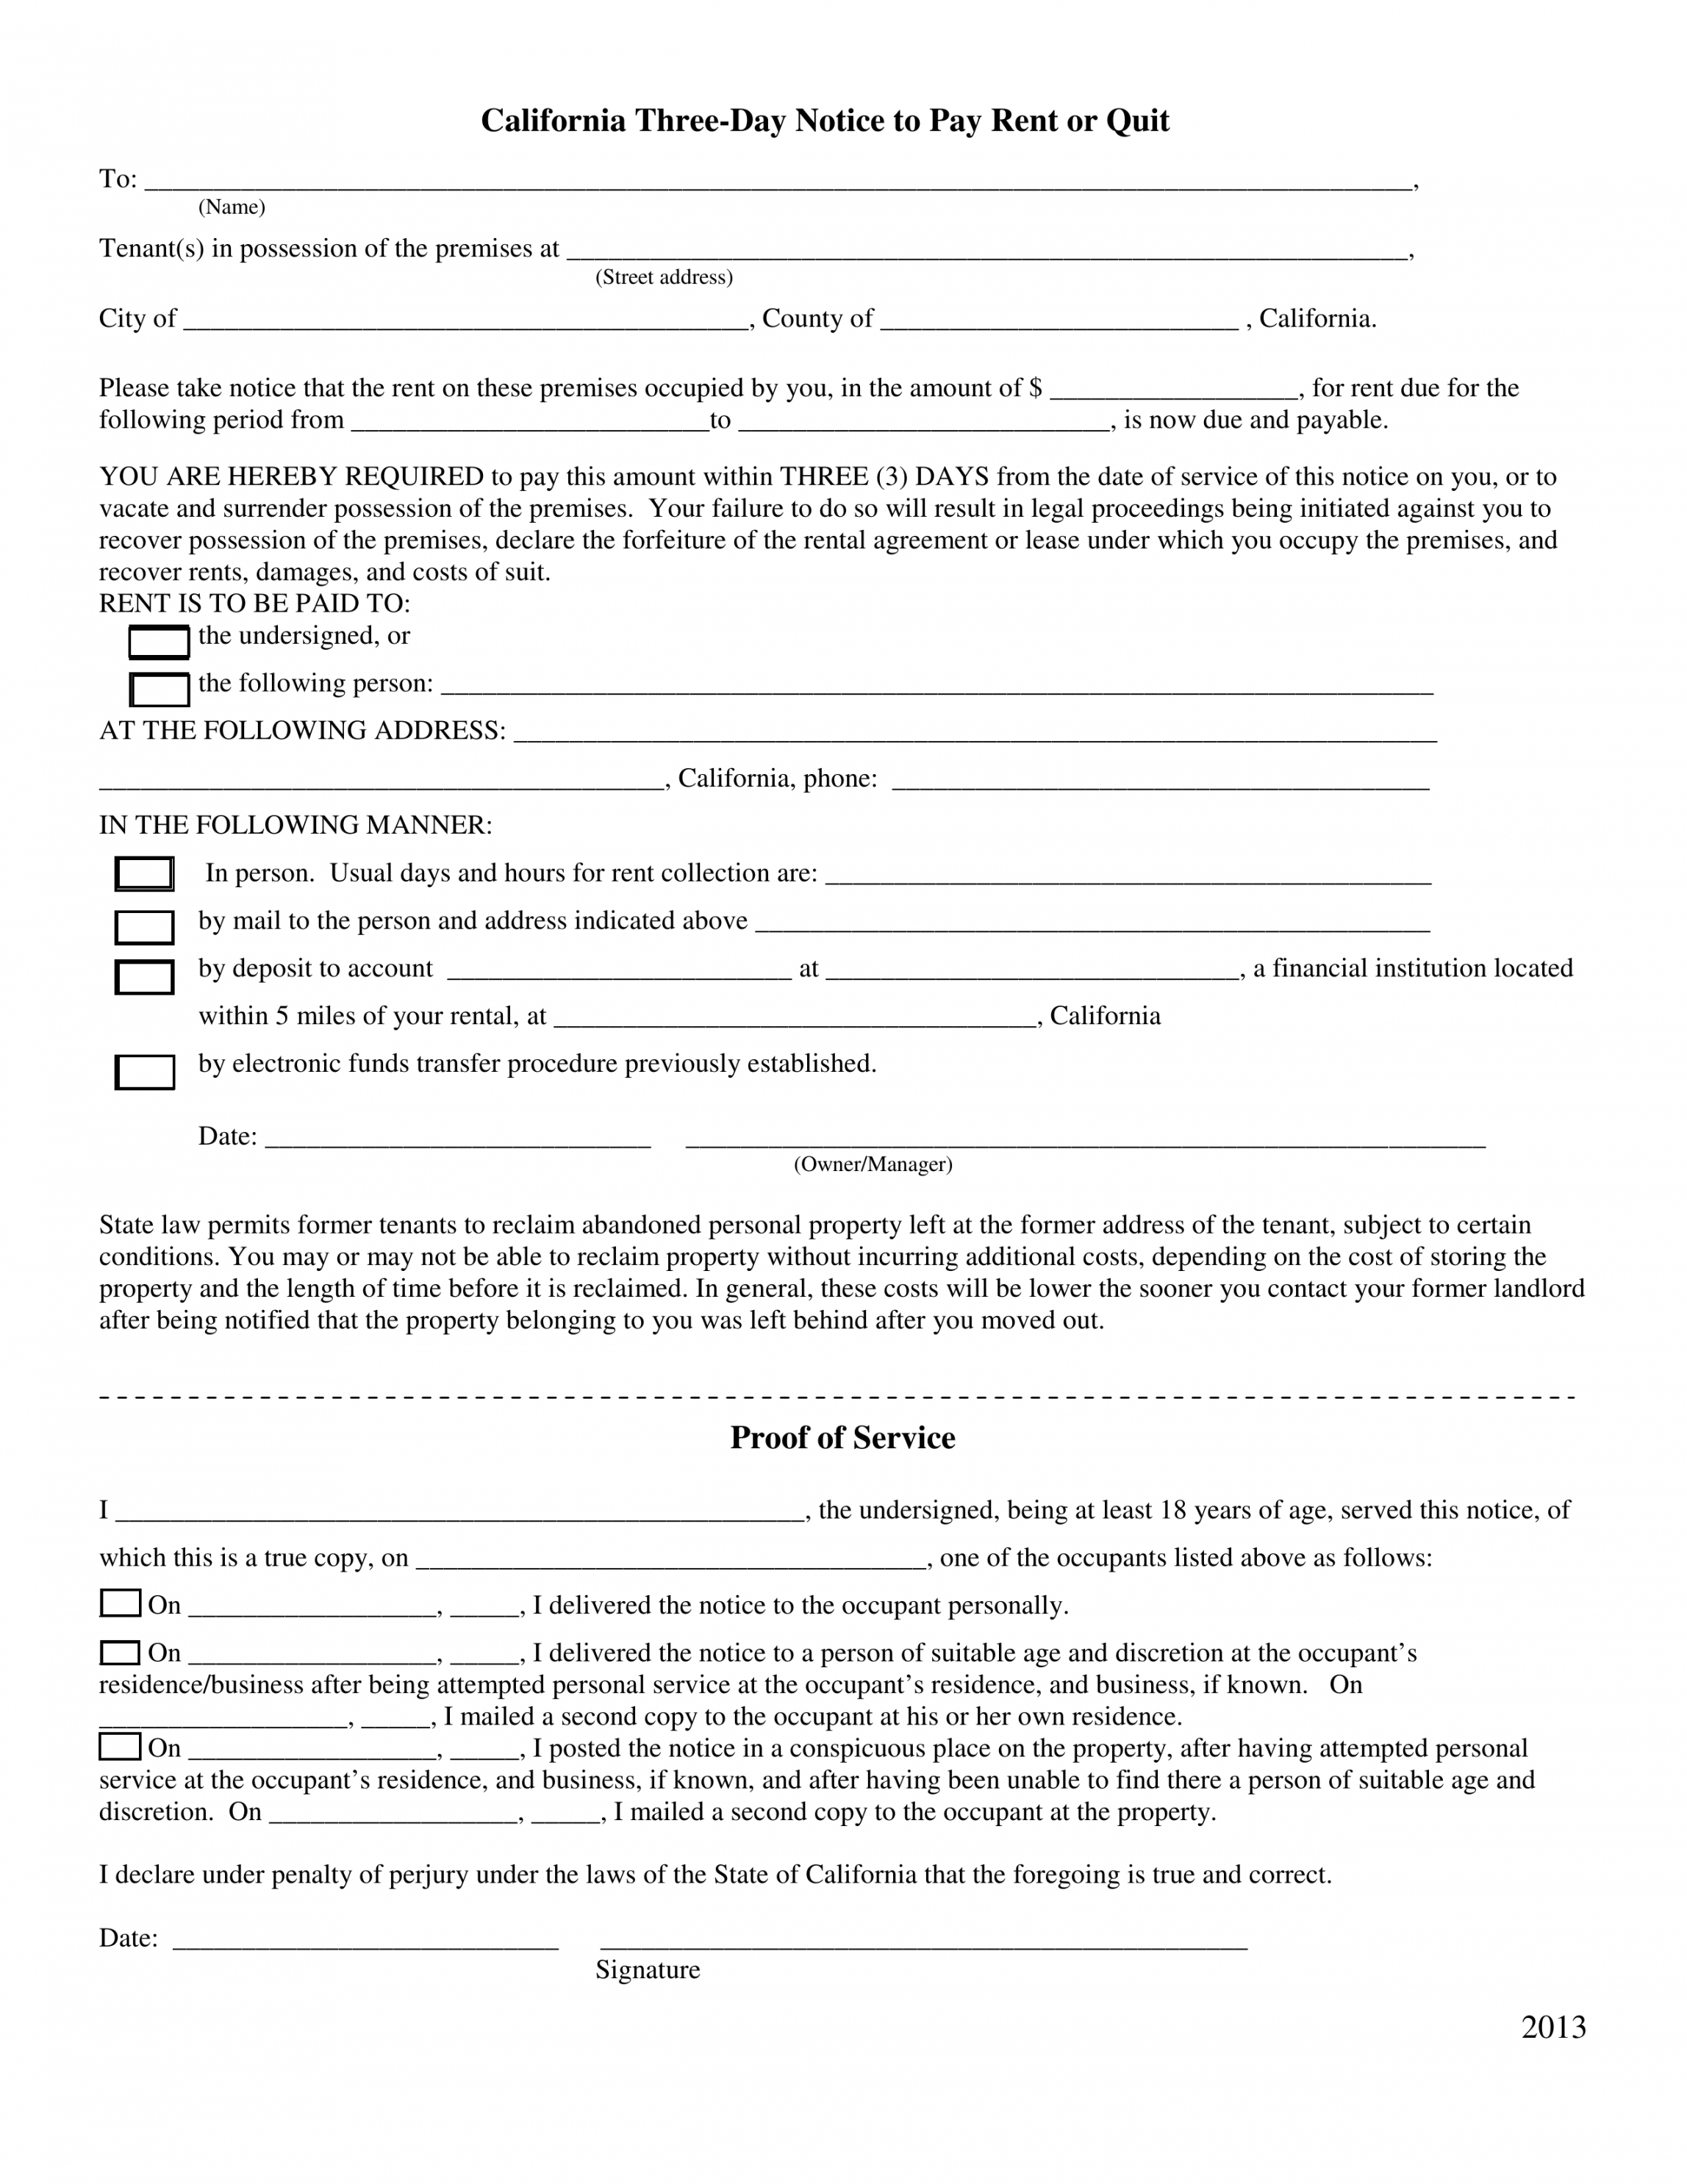 printable california 3day notice to quit form  nonpayment of rent 3 day eviction notice california template example